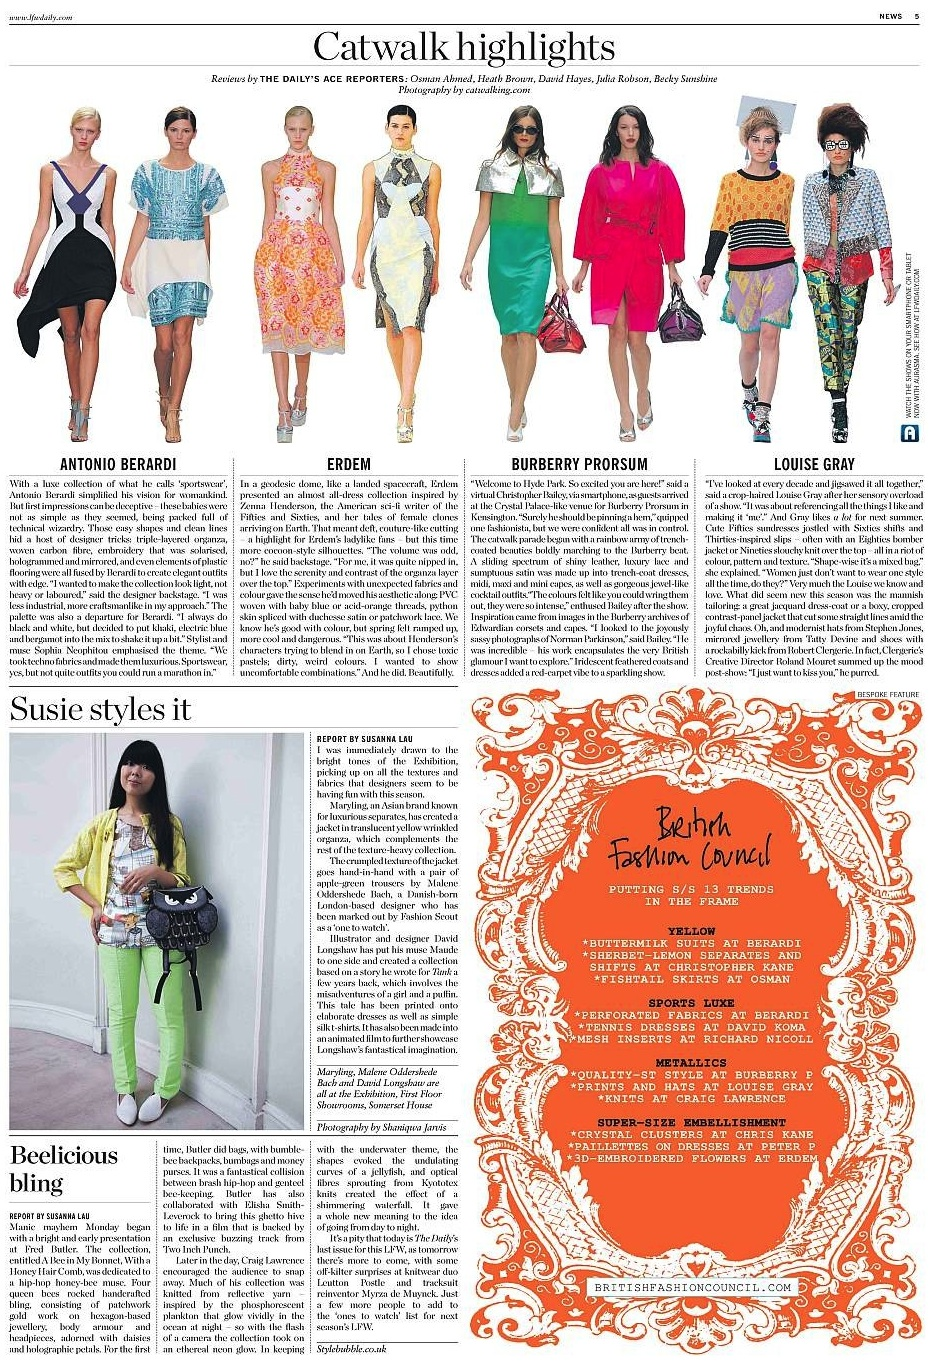 Catwalk Highlights, LFW The Daily